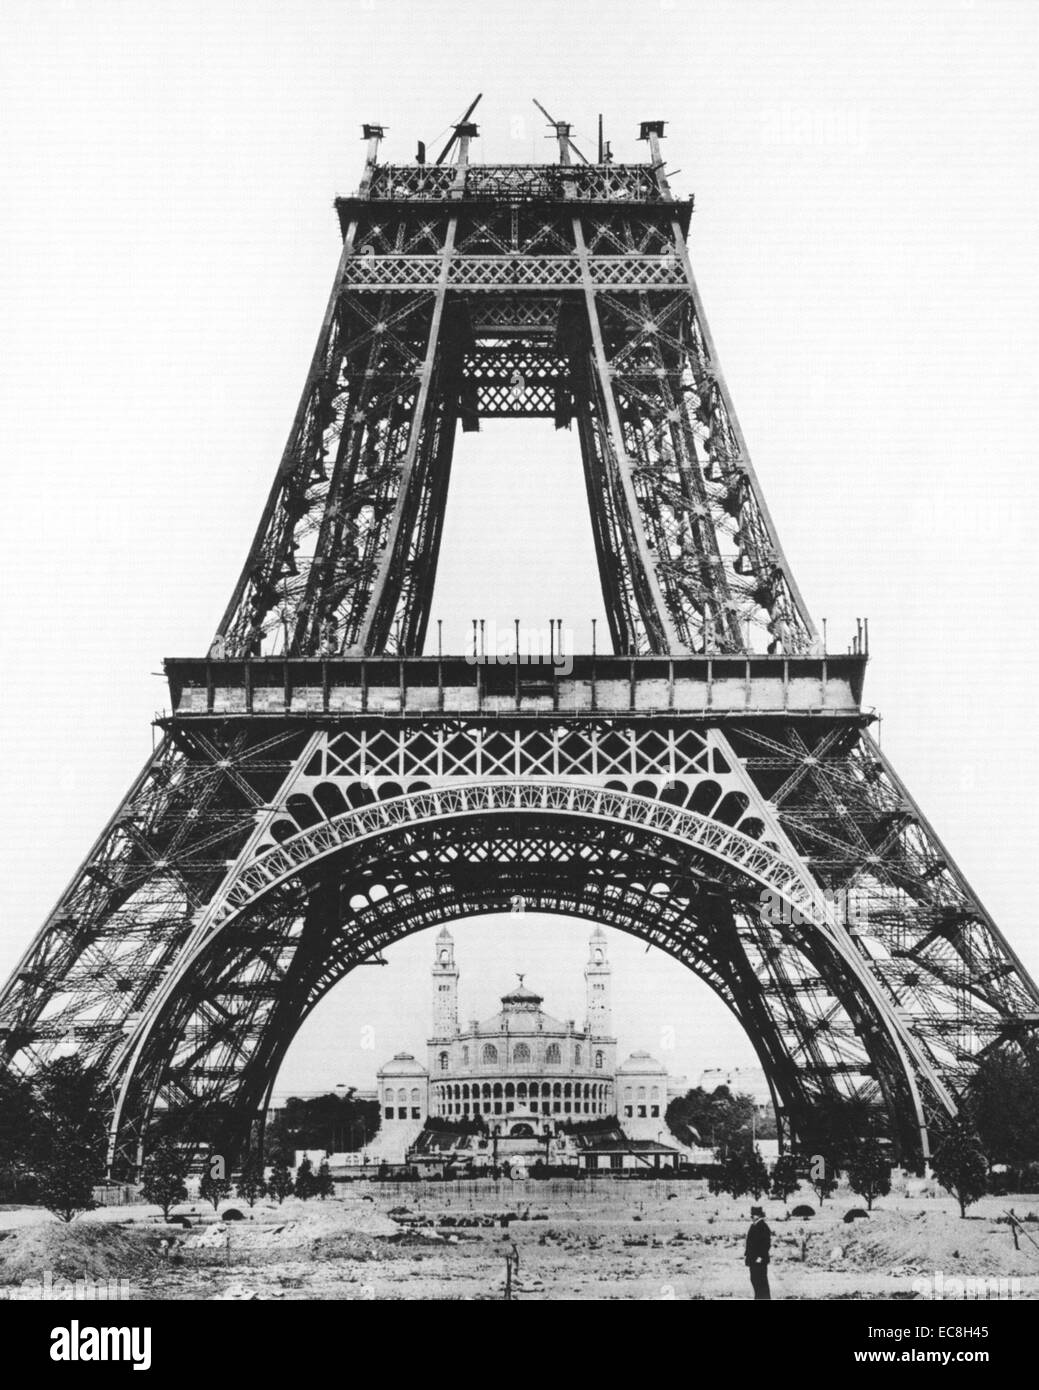 EIFFEL TOWER being built in 1889 as the entry point for the Paris Exposition Universelle - Stock Image